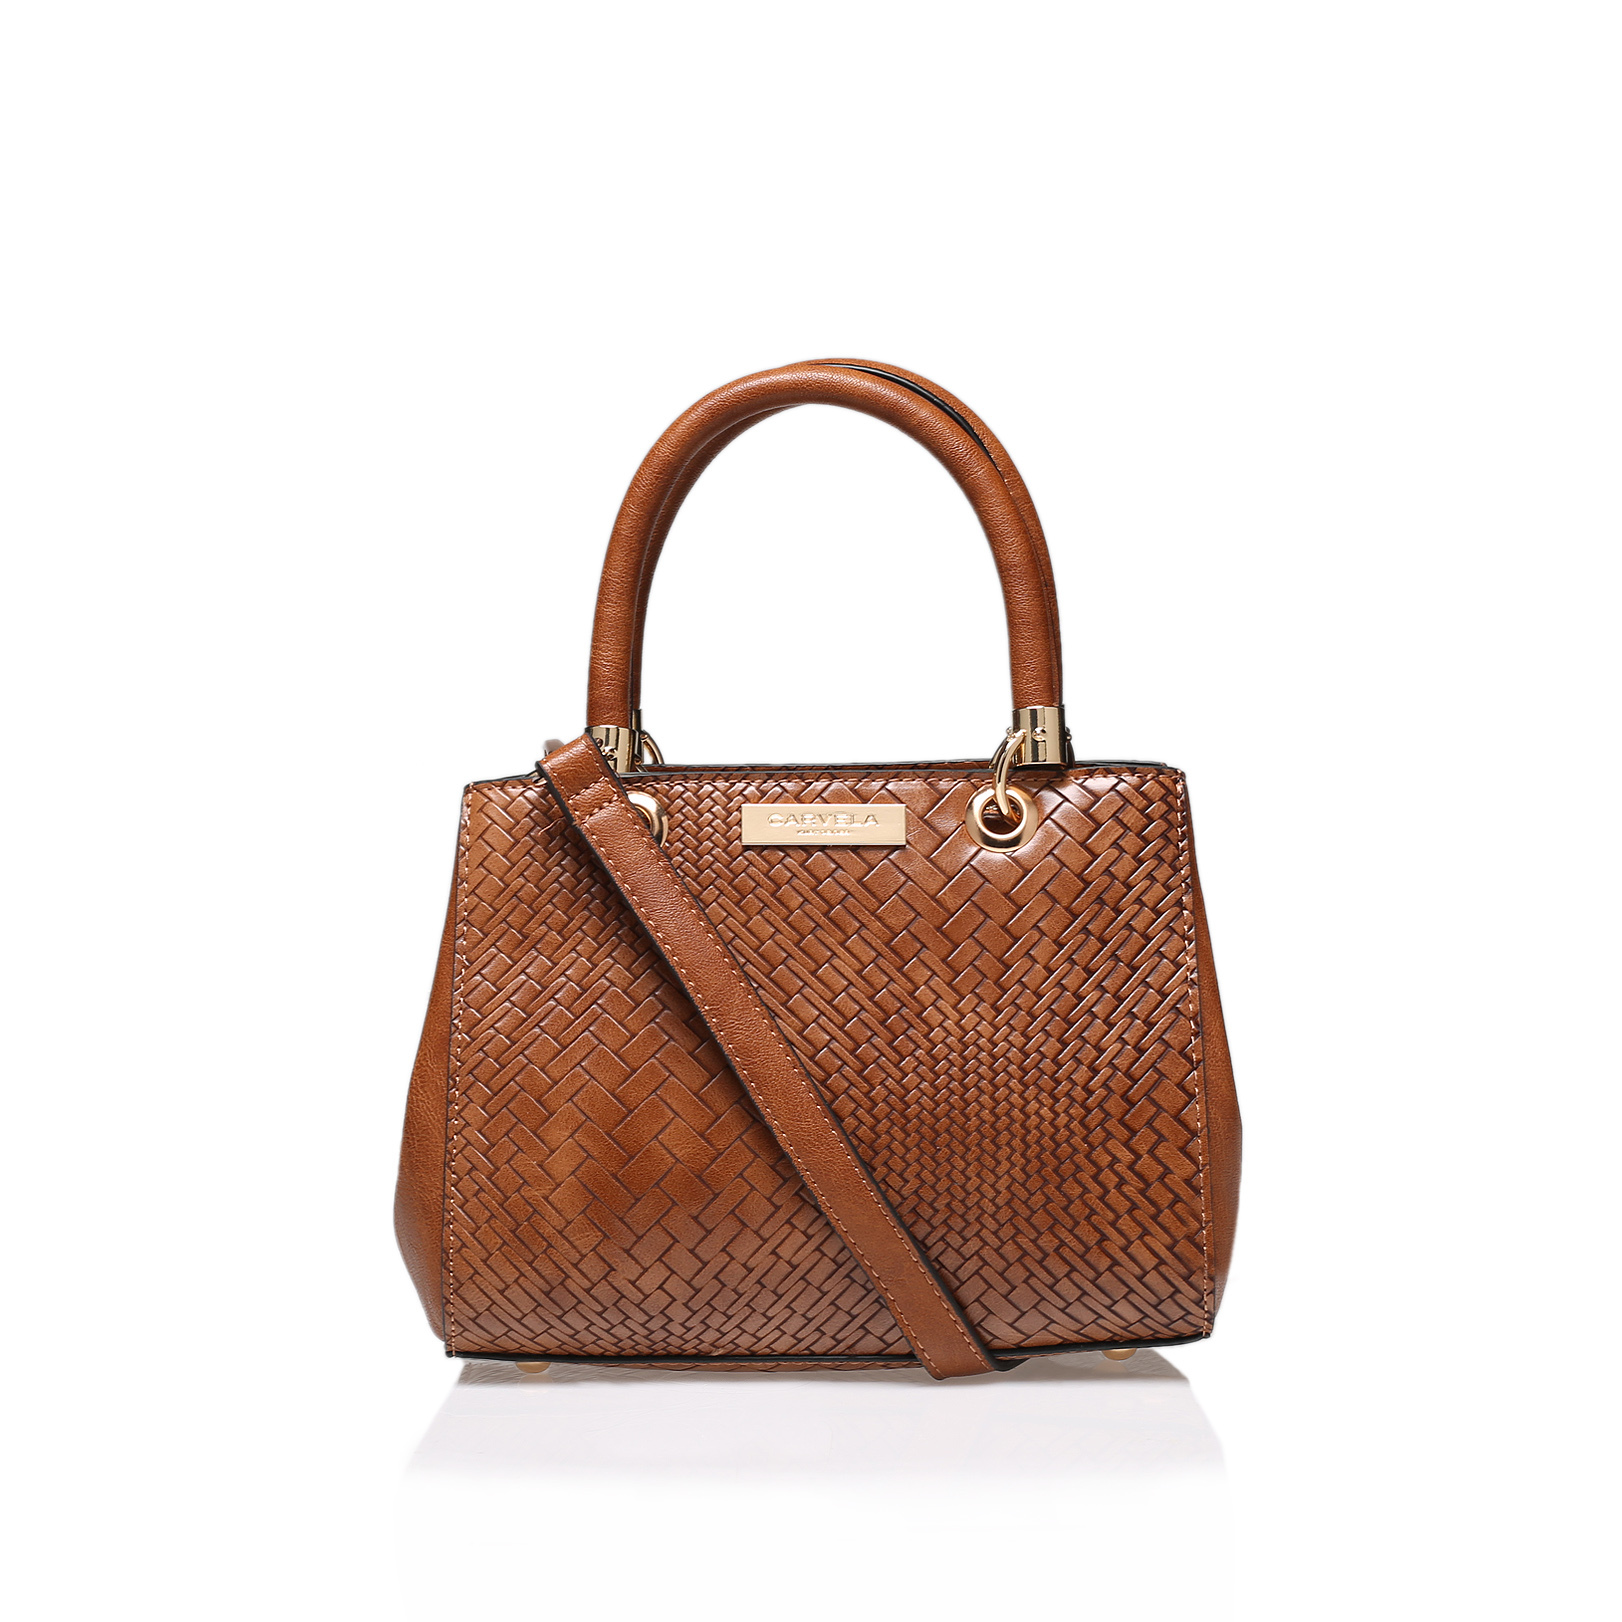 DEA WEAVED STRUCTURED BAG